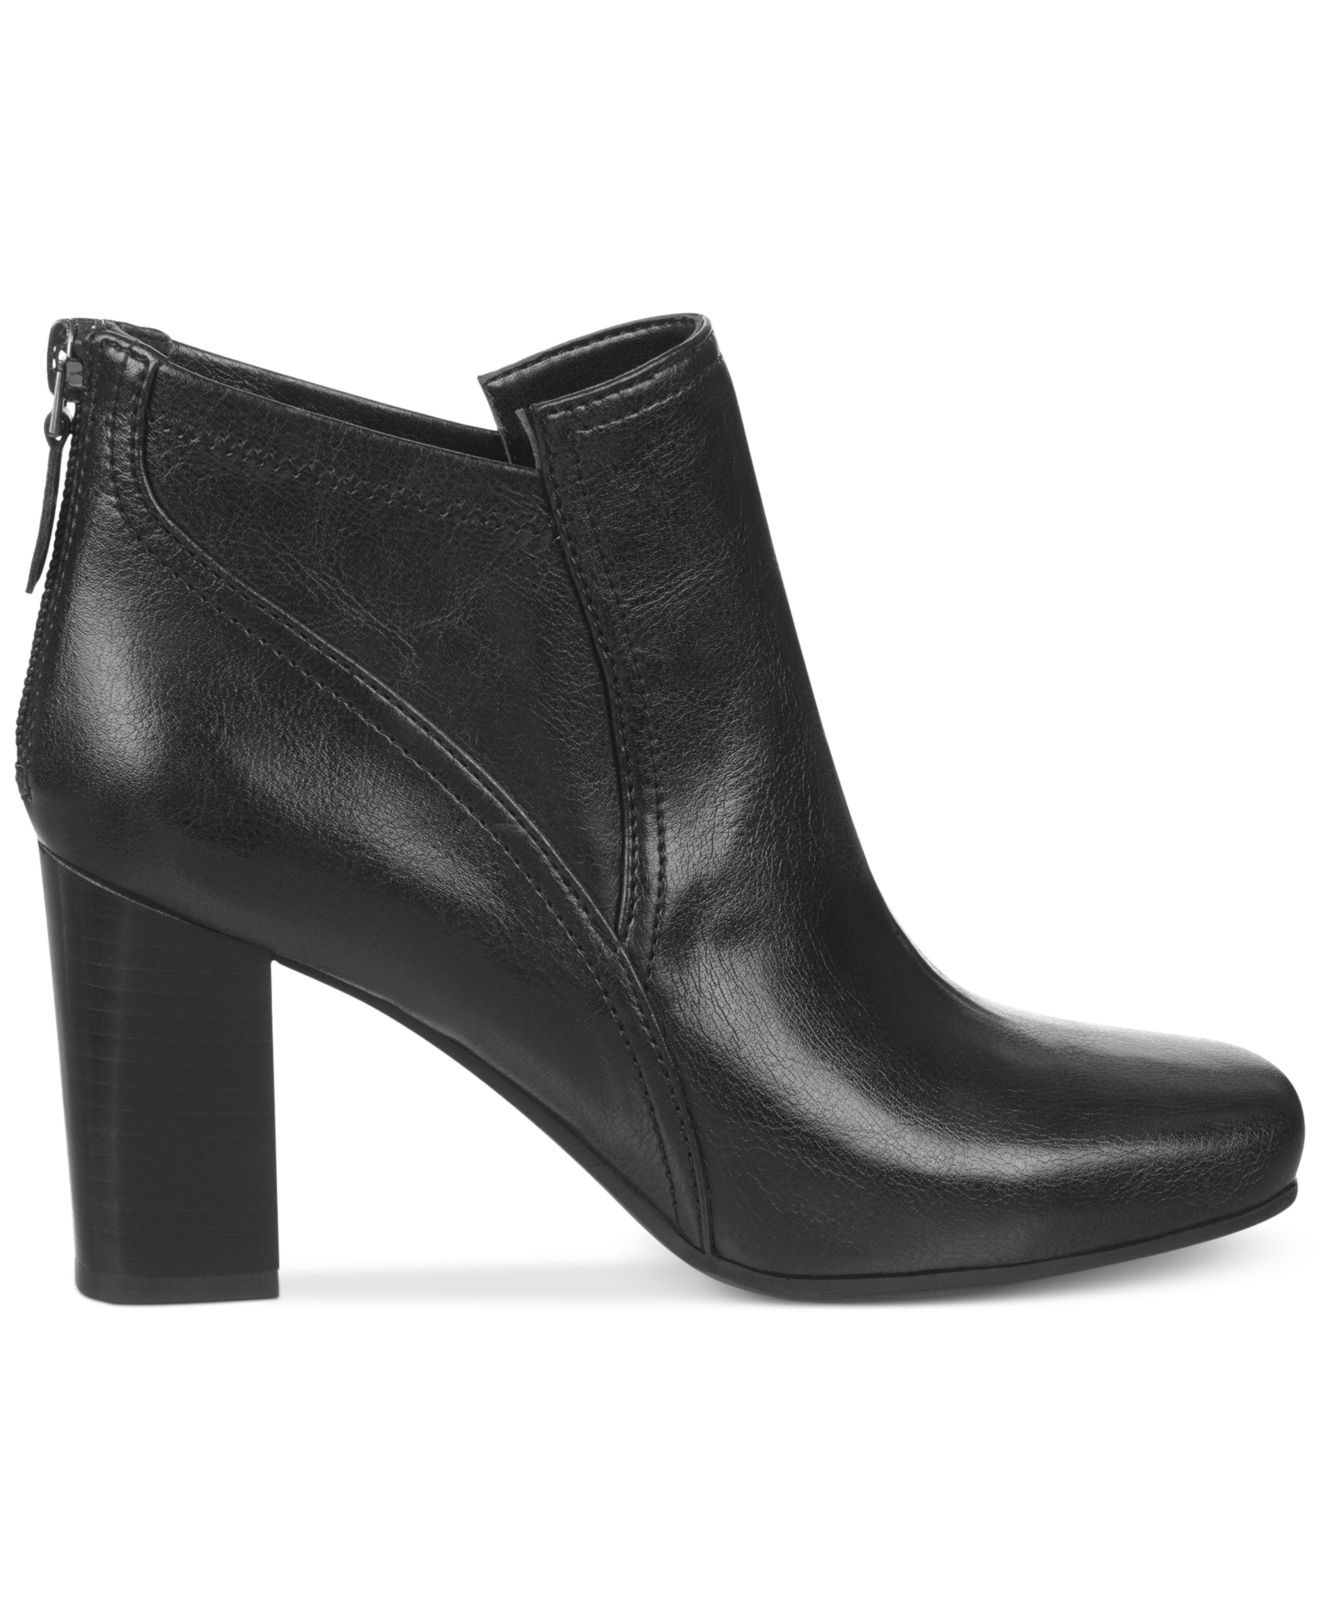 Where Are Naturalizer Boots Made